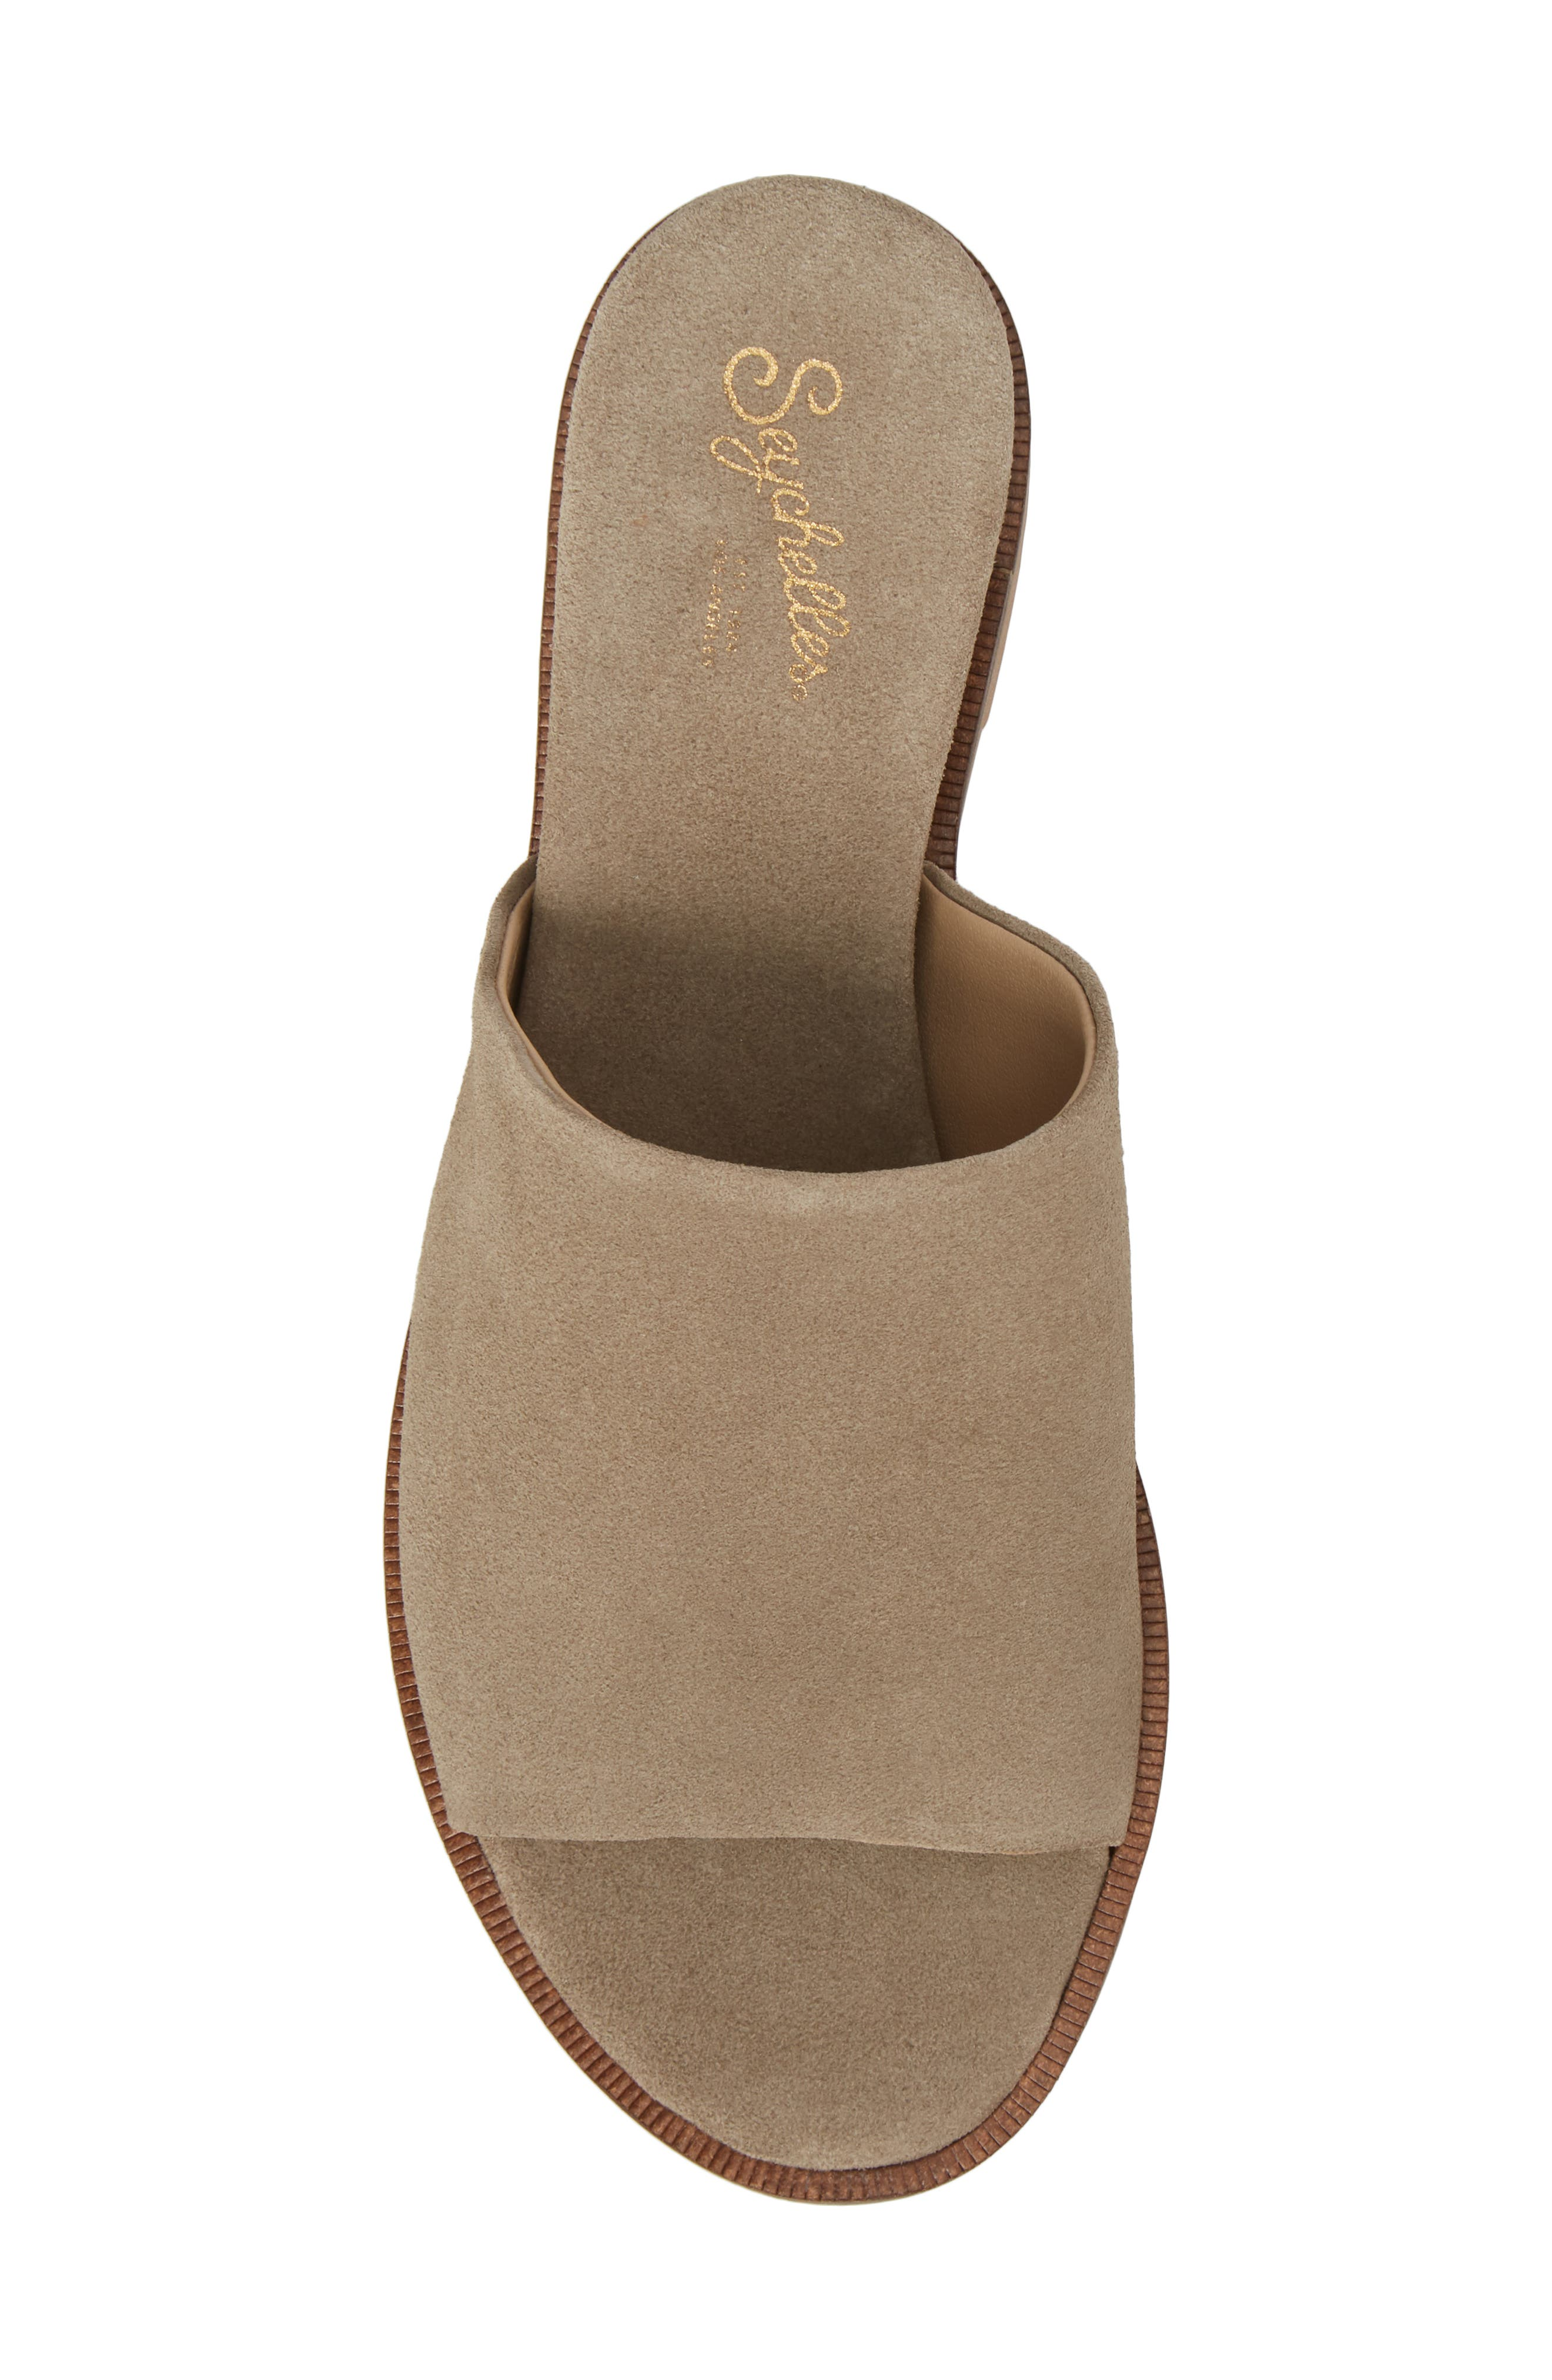 Relaxing Wedge Slide Sandal,                             Alternate thumbnail 5, color,                             TAUPE LEATHER